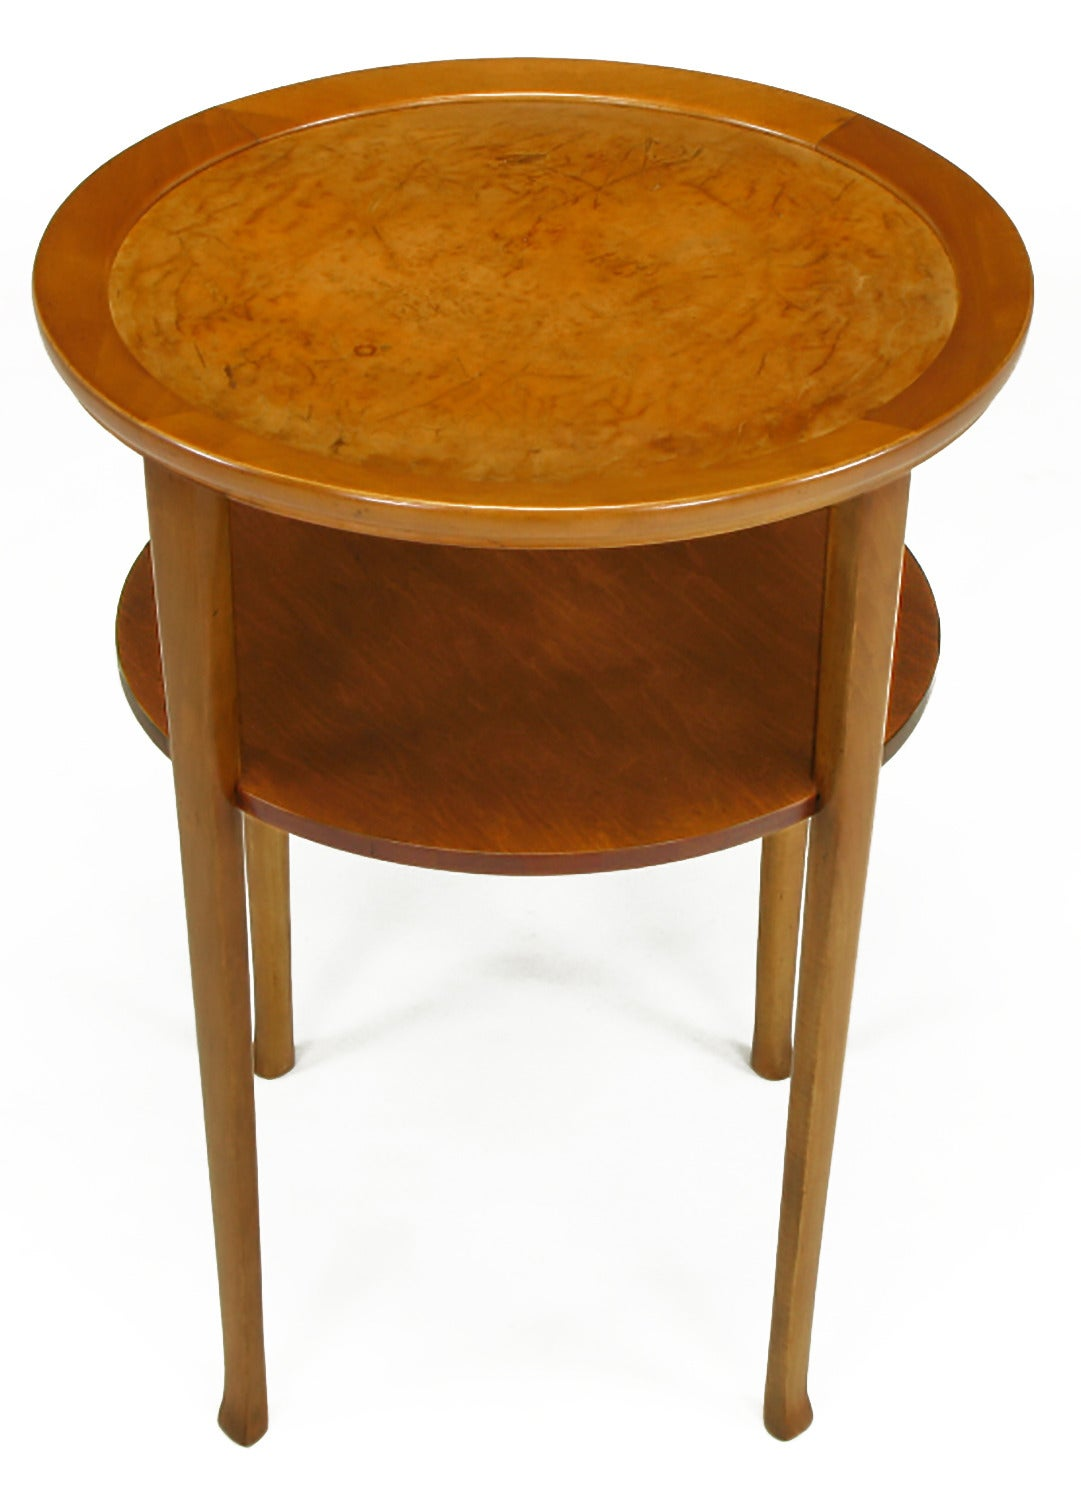 American 1940s Round Two-Tier Maple Side Table with Buffalo Leather Inlay For Sale